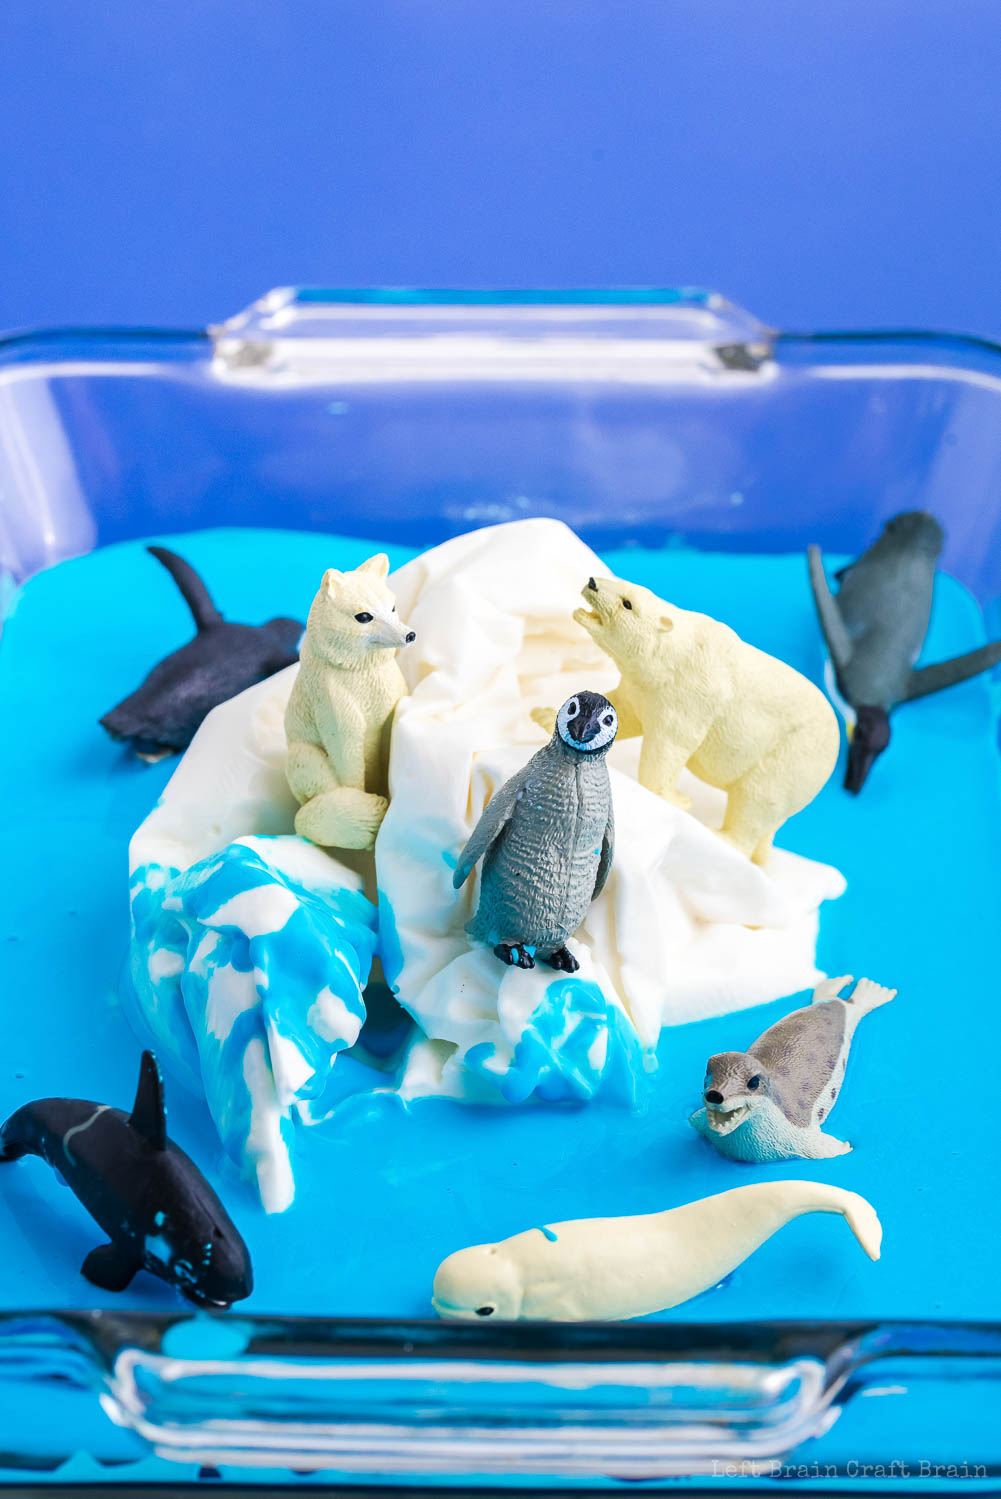 white frozen oobleck iceberg in pool of blue oobleck in glass tray with plastic polar animal toys like penguins orca seal polar bear